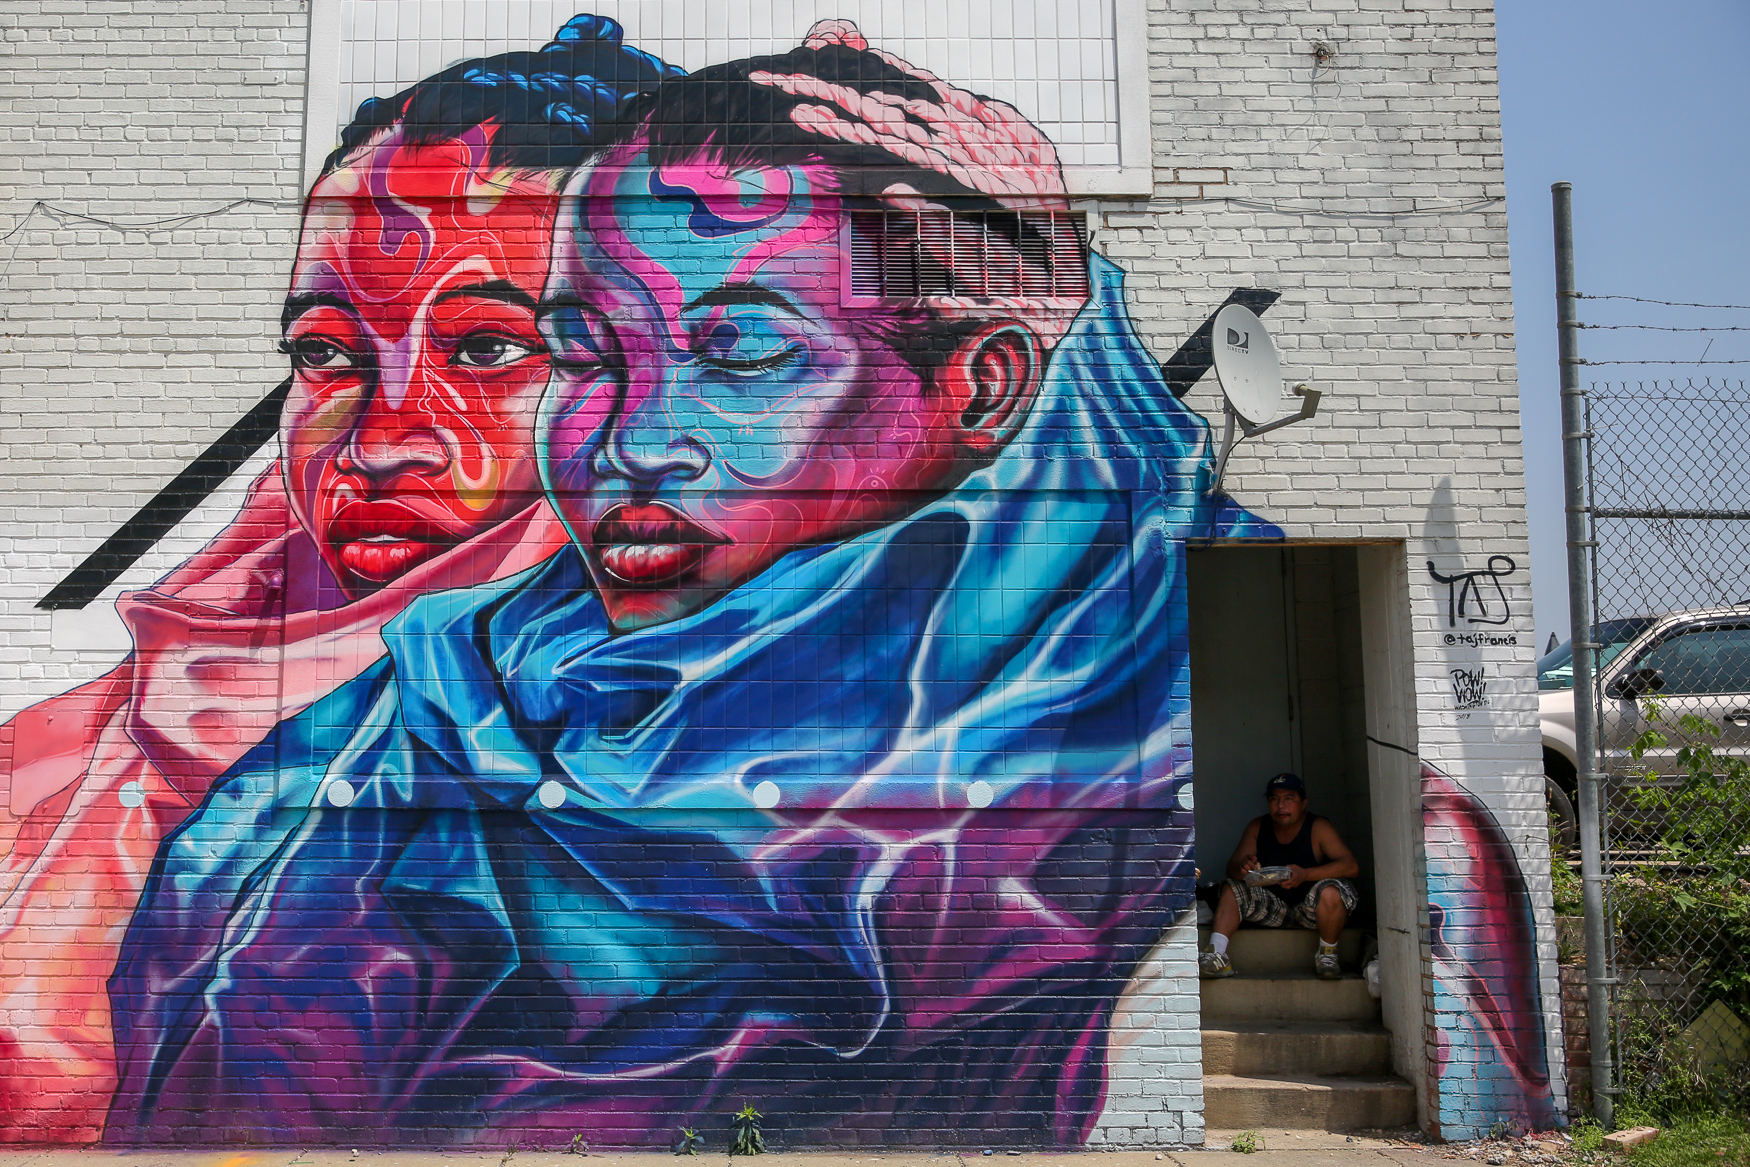 POW! WOW!, an international mural festival, came to D.C. earlier this month and brought life to the streets of NoMa by inviting twenty artists from around the world to decorate The District. You can find a mp